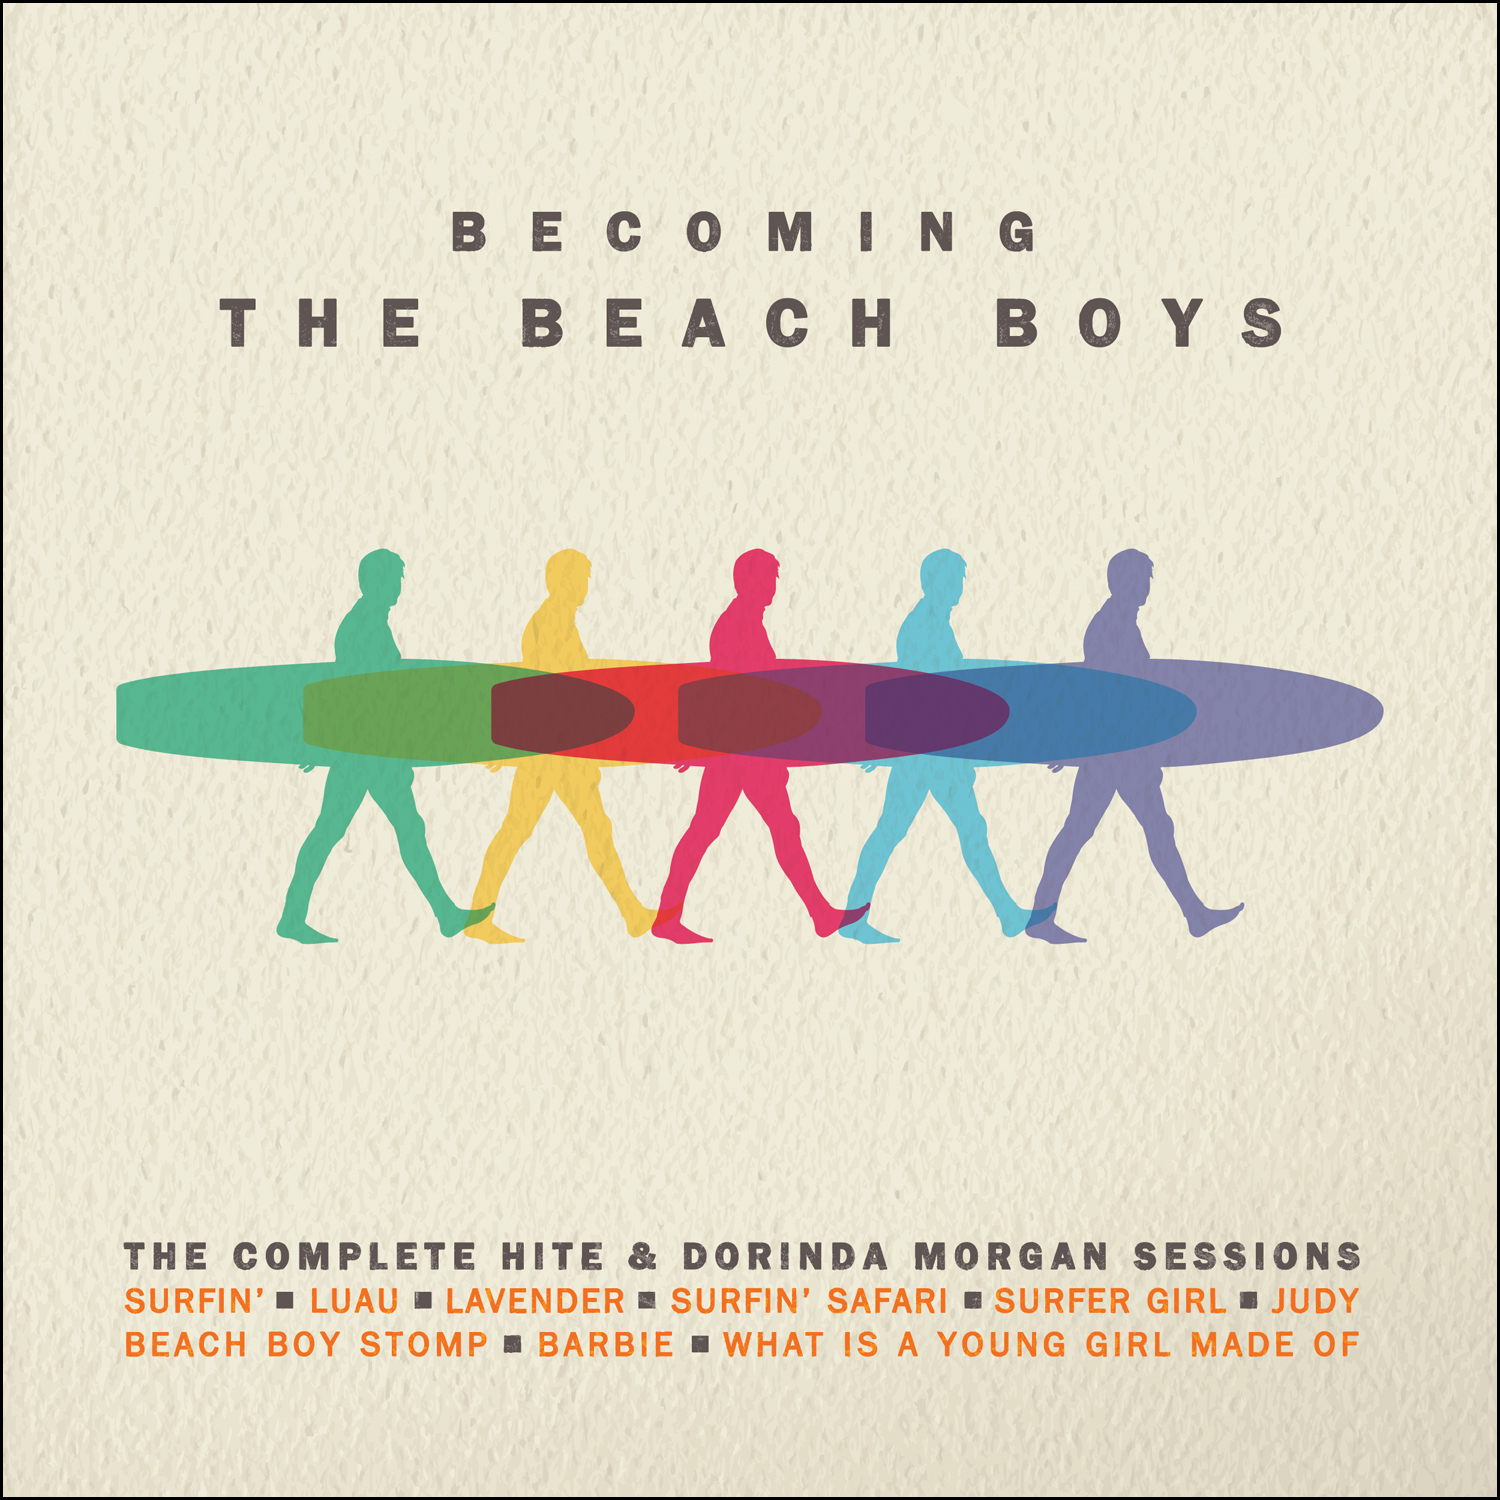 The Beach Boys - Becoming The Beach Boys: The Complete Hite & Dorinda Morgan Sessions [2CD]